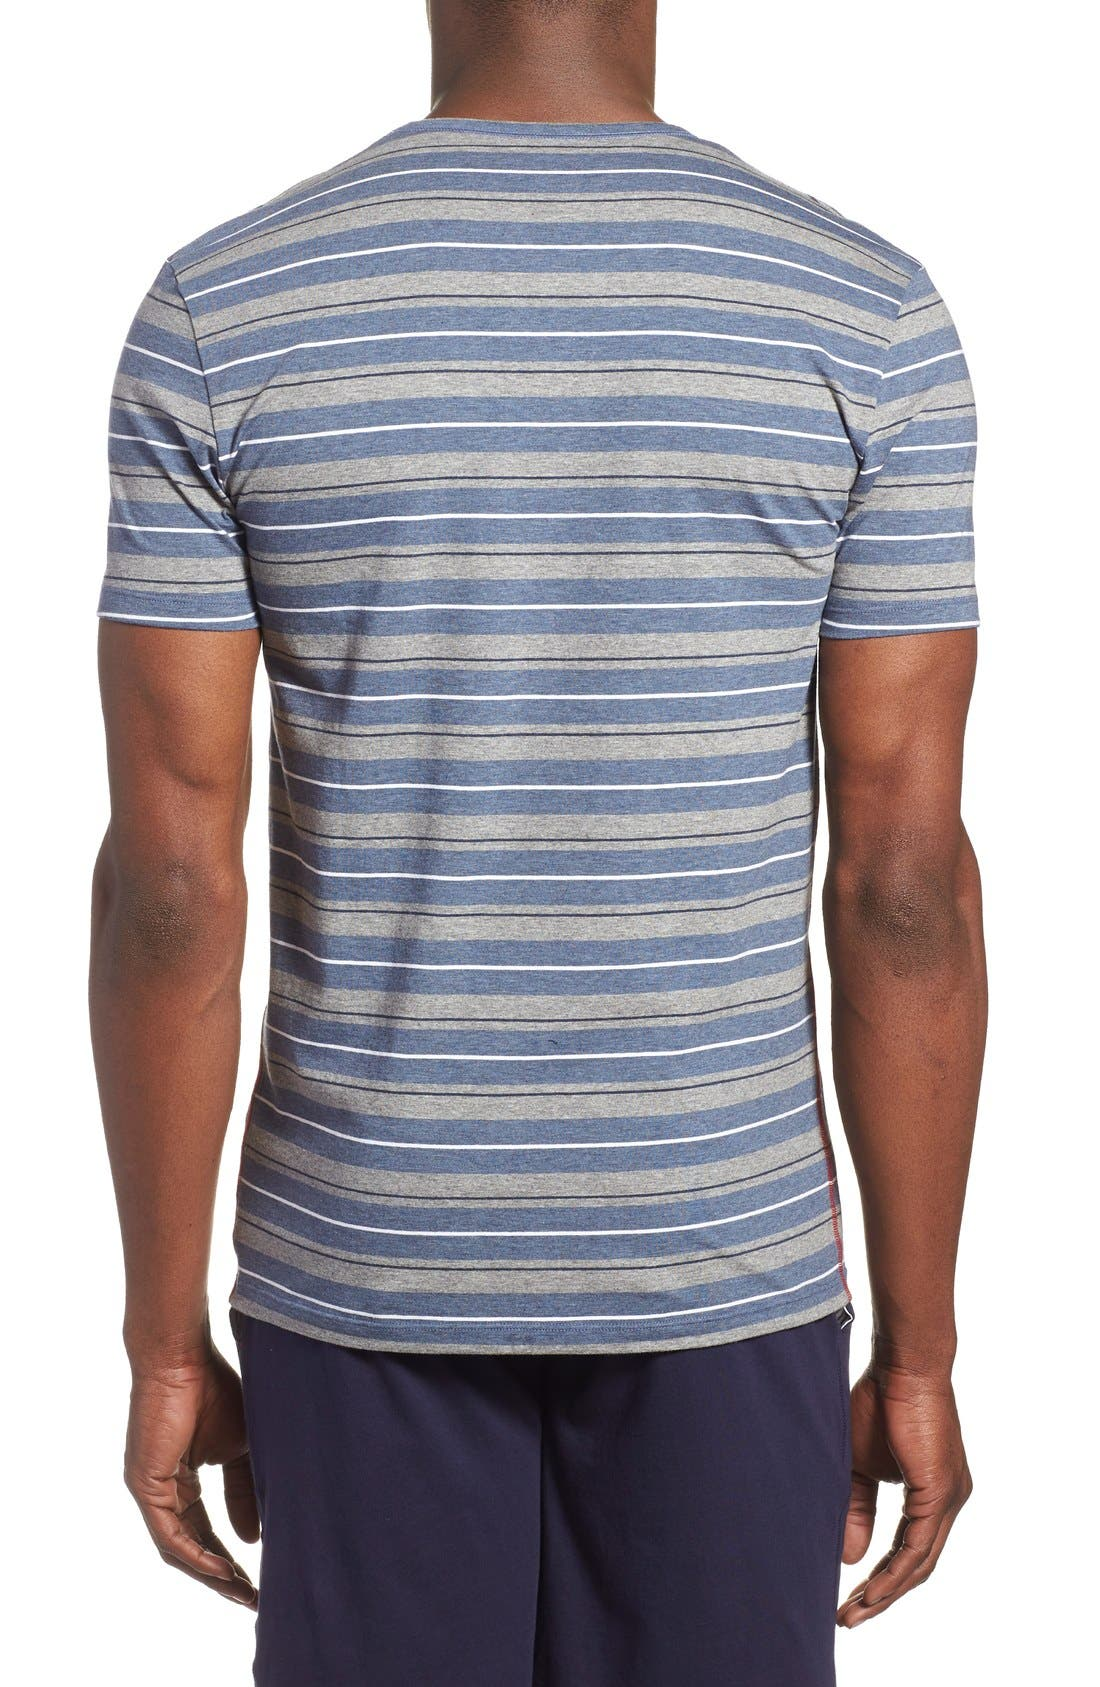 Alternate Image 2  - Paul Smith Stripe Stretch Cotton T-Shirt